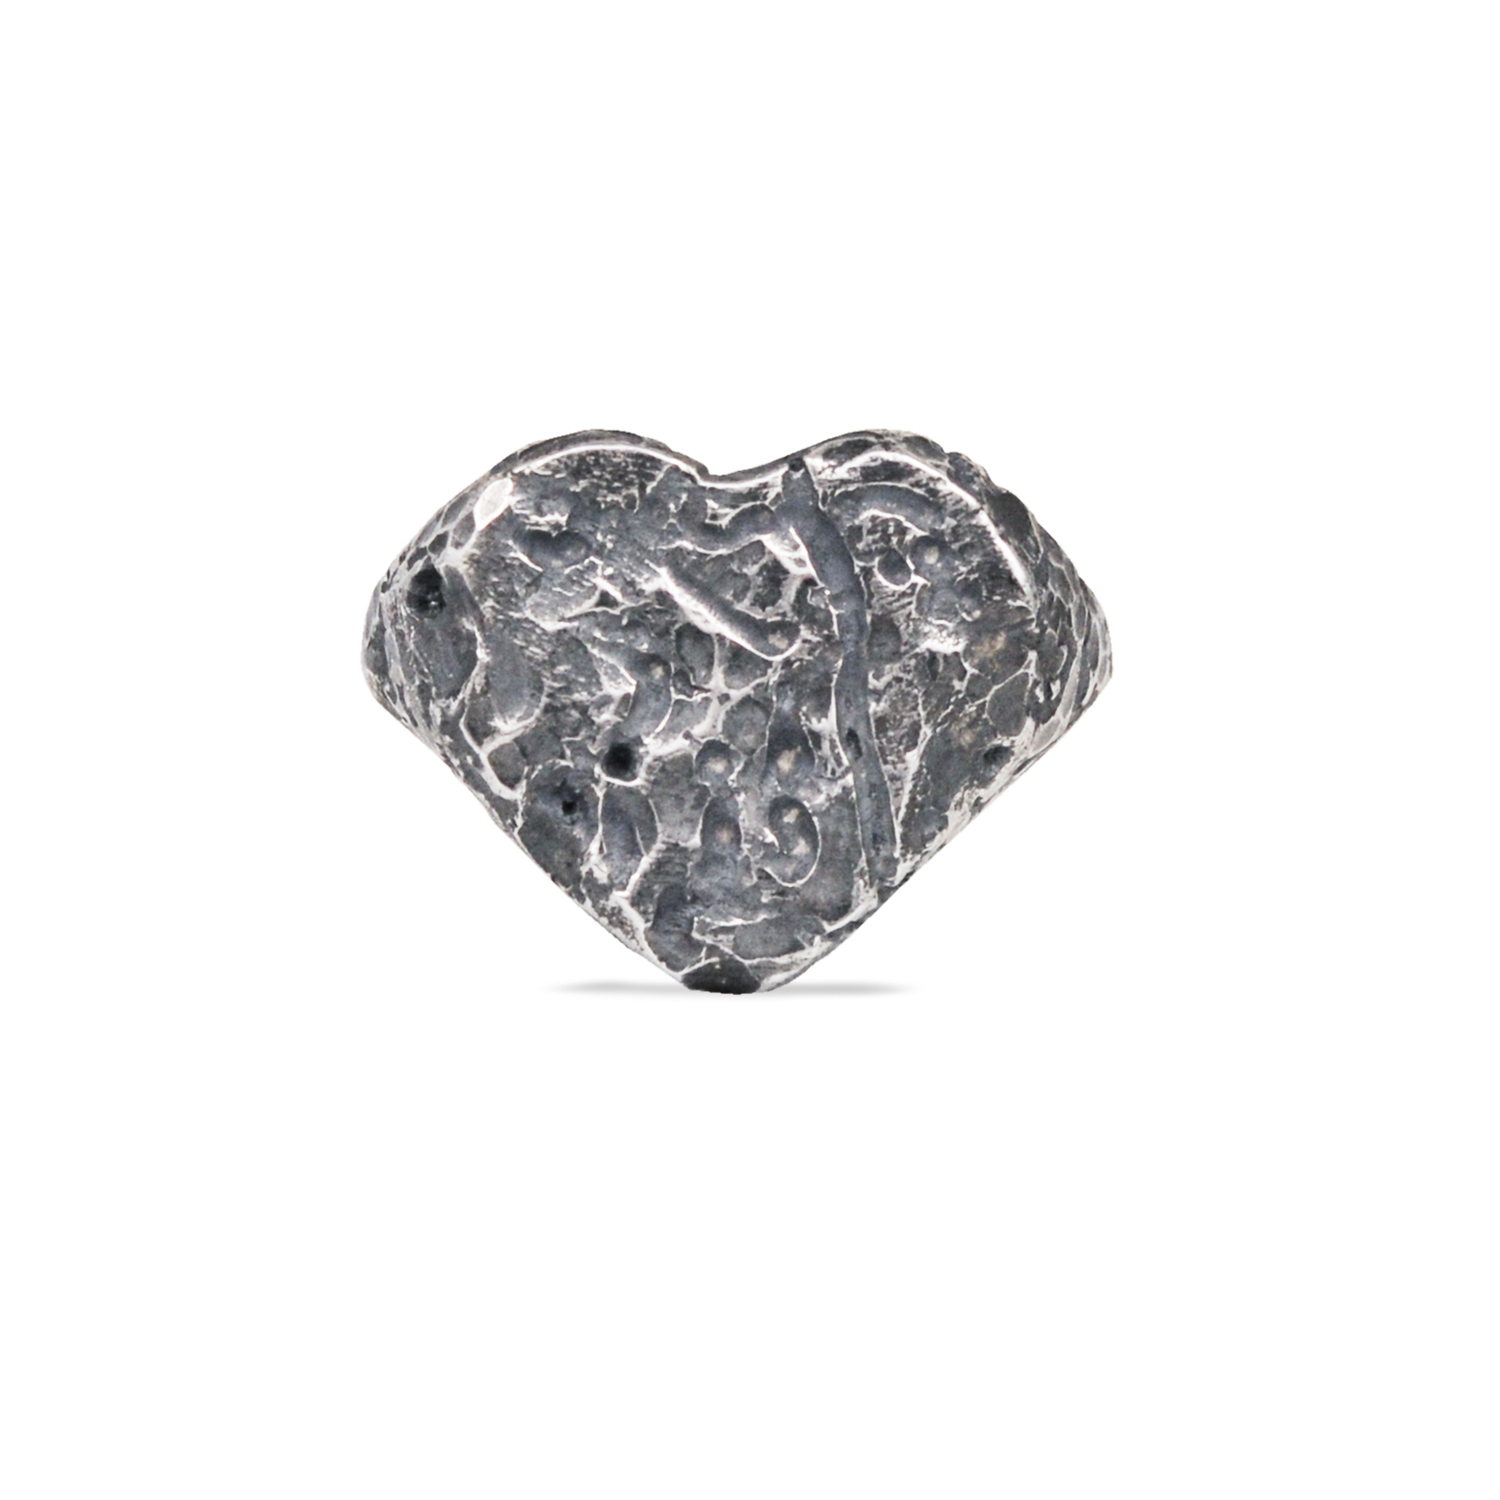 Esperidi  - Heart shaped silver ring by Rawsen